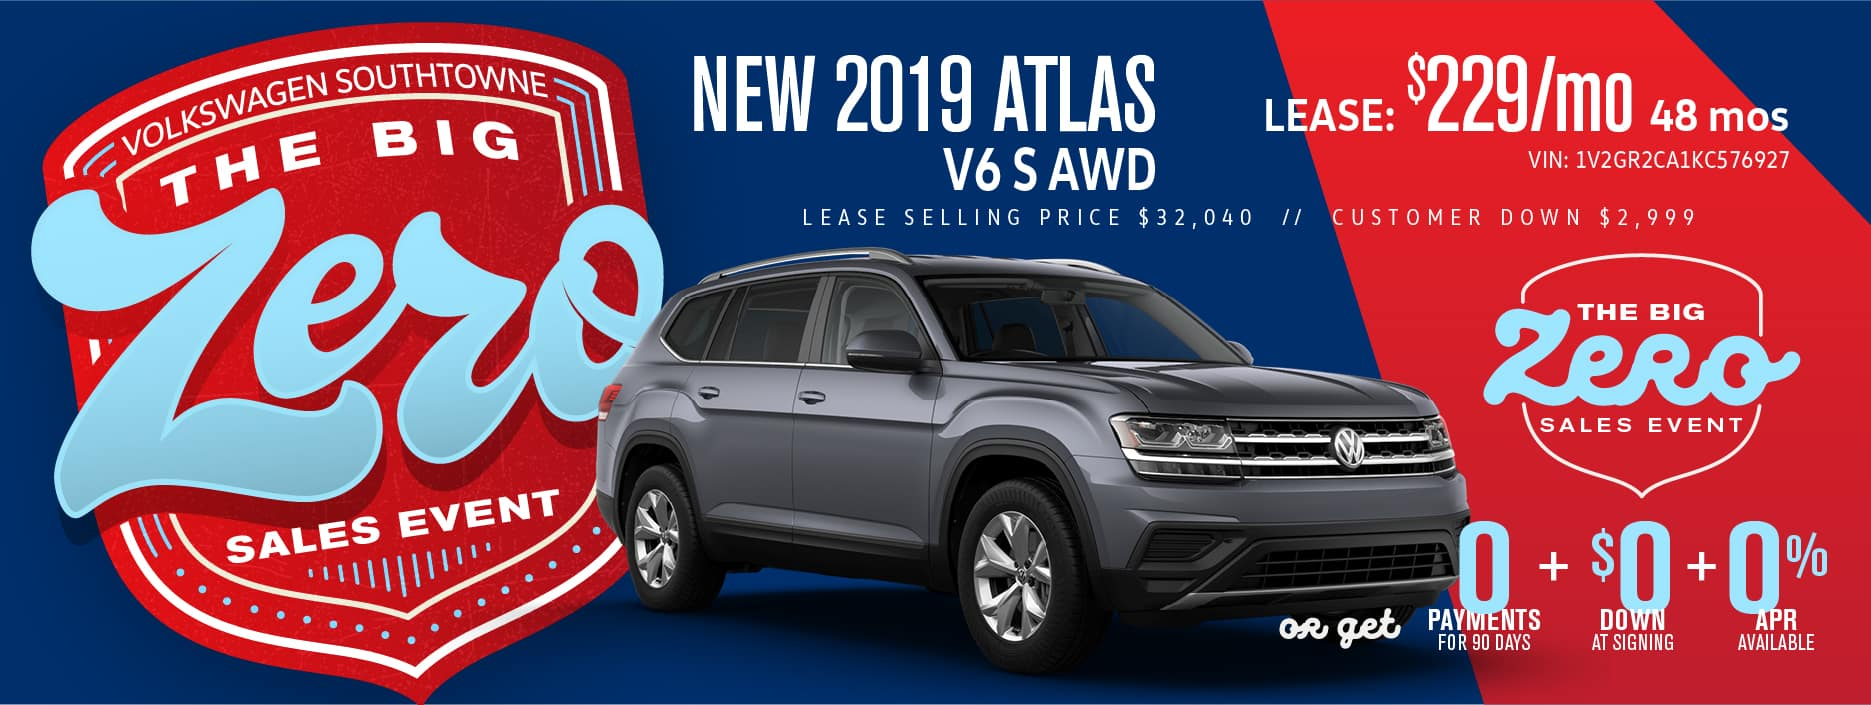 Get a new Atlas for ZERO down and ZERO Payments for 90 days.